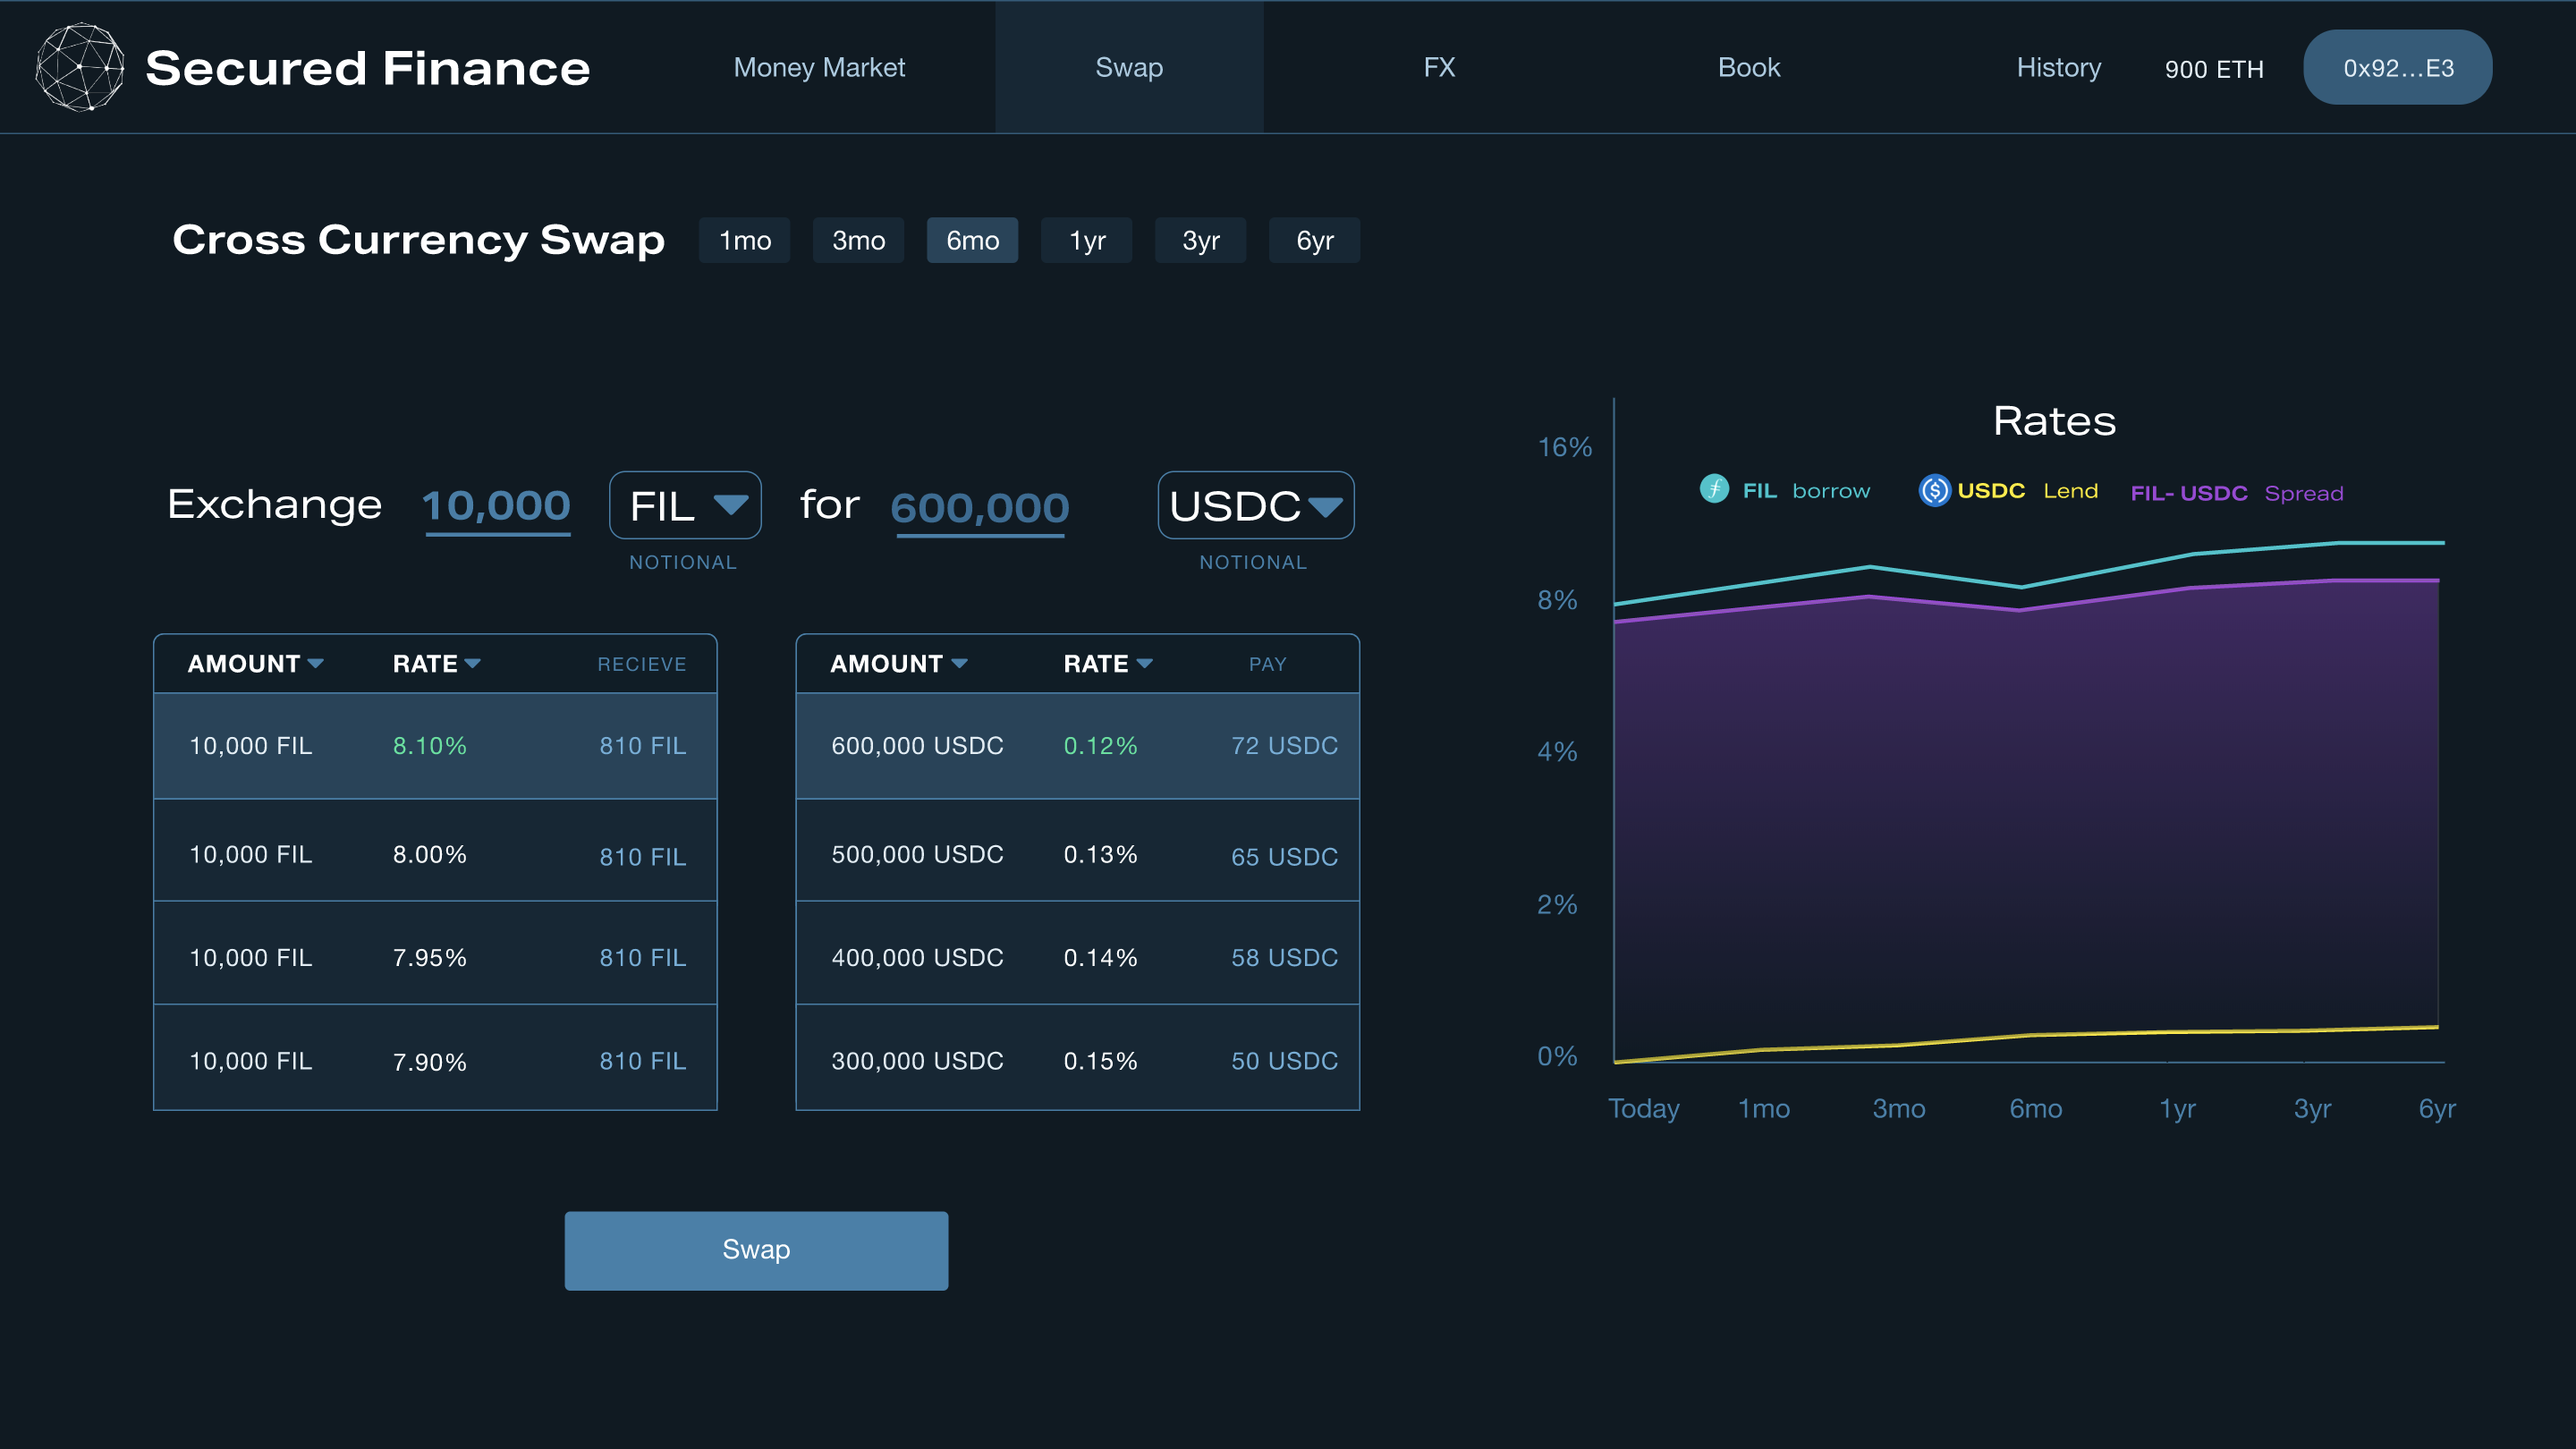 Secured Finance - Cross-currency swaps